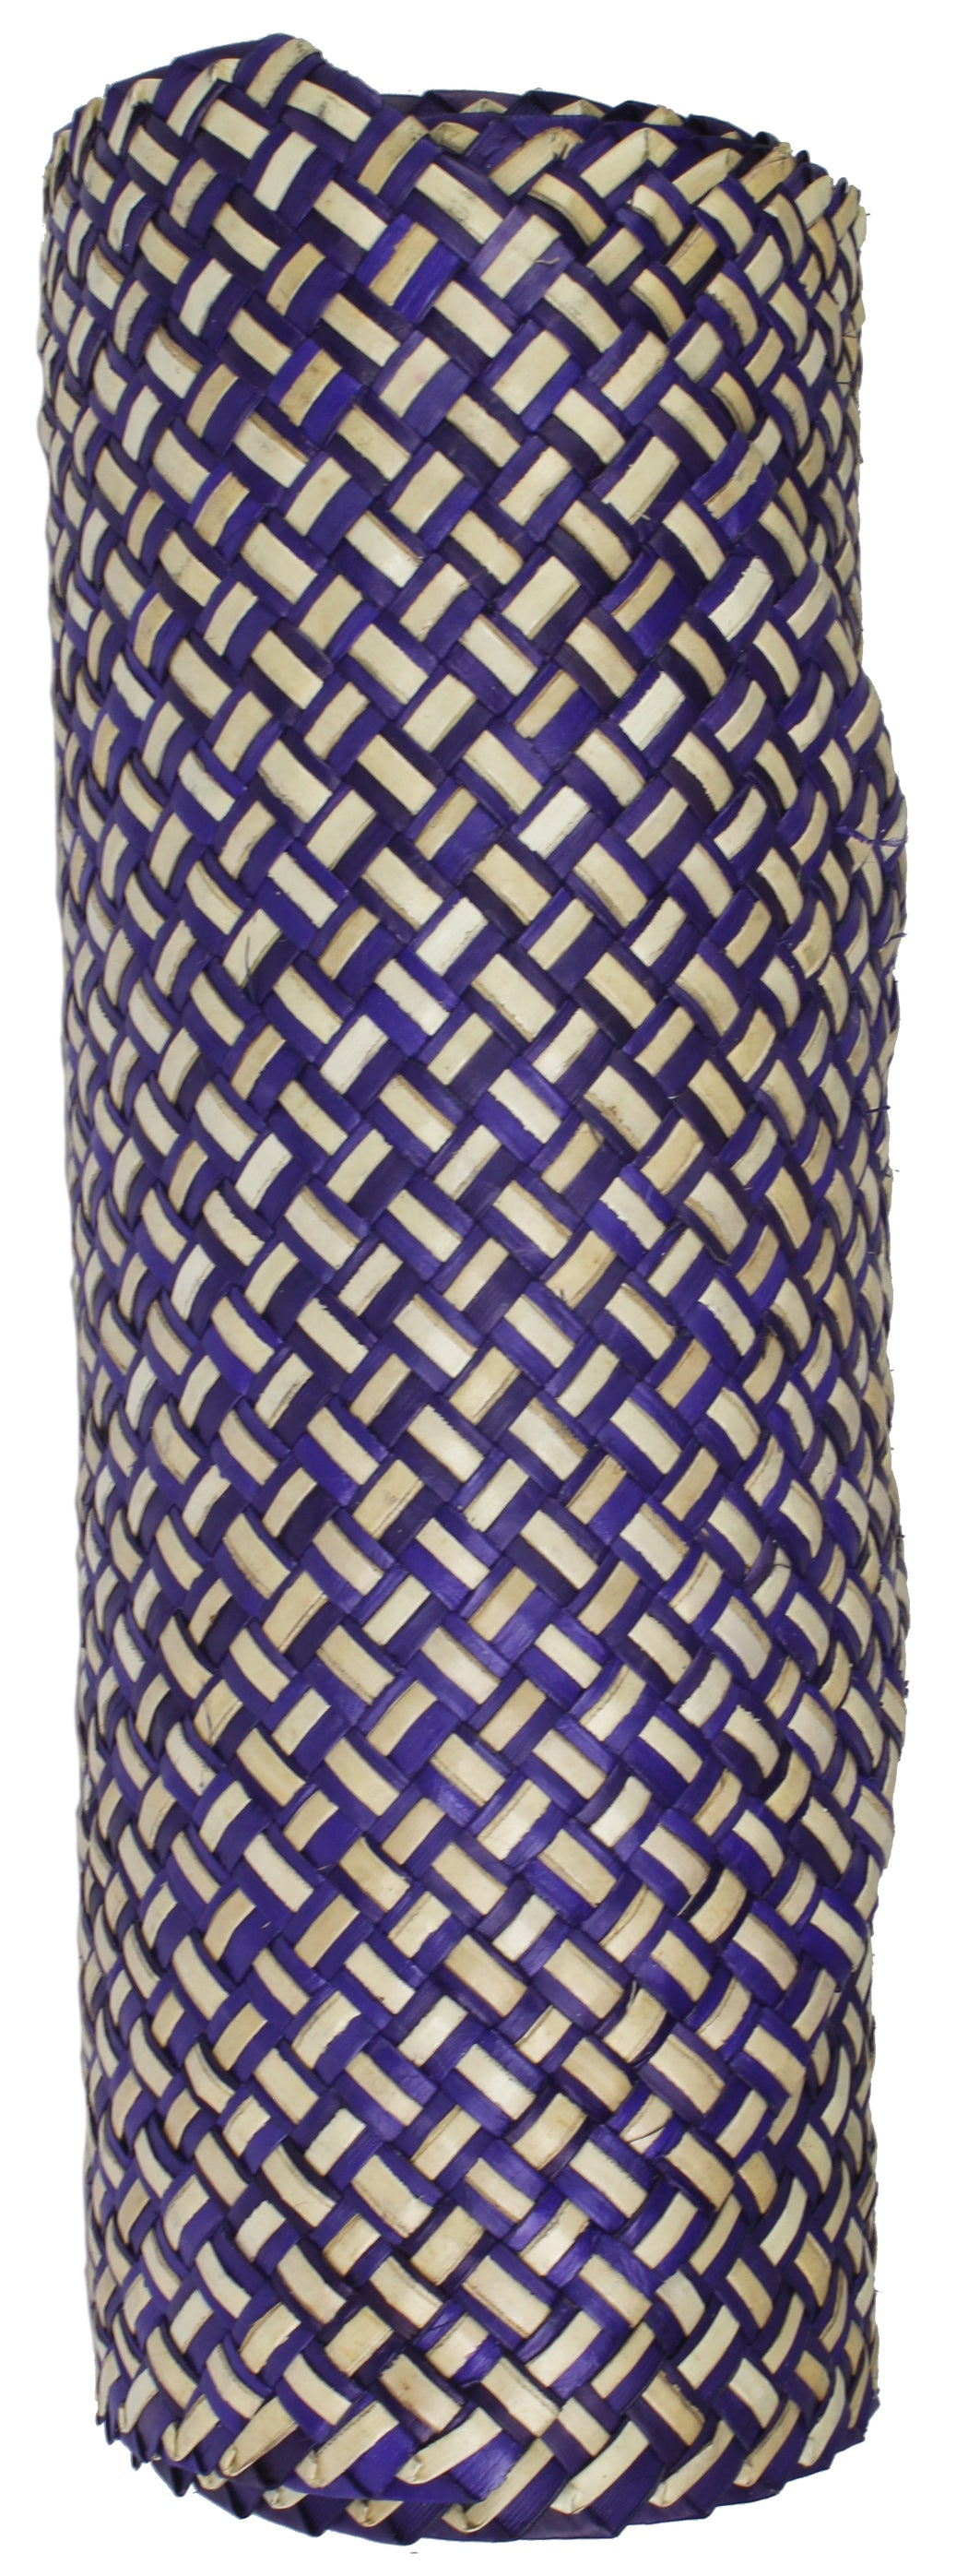 Table Runner Handwoven from Pandan Straw - Purple/Natural